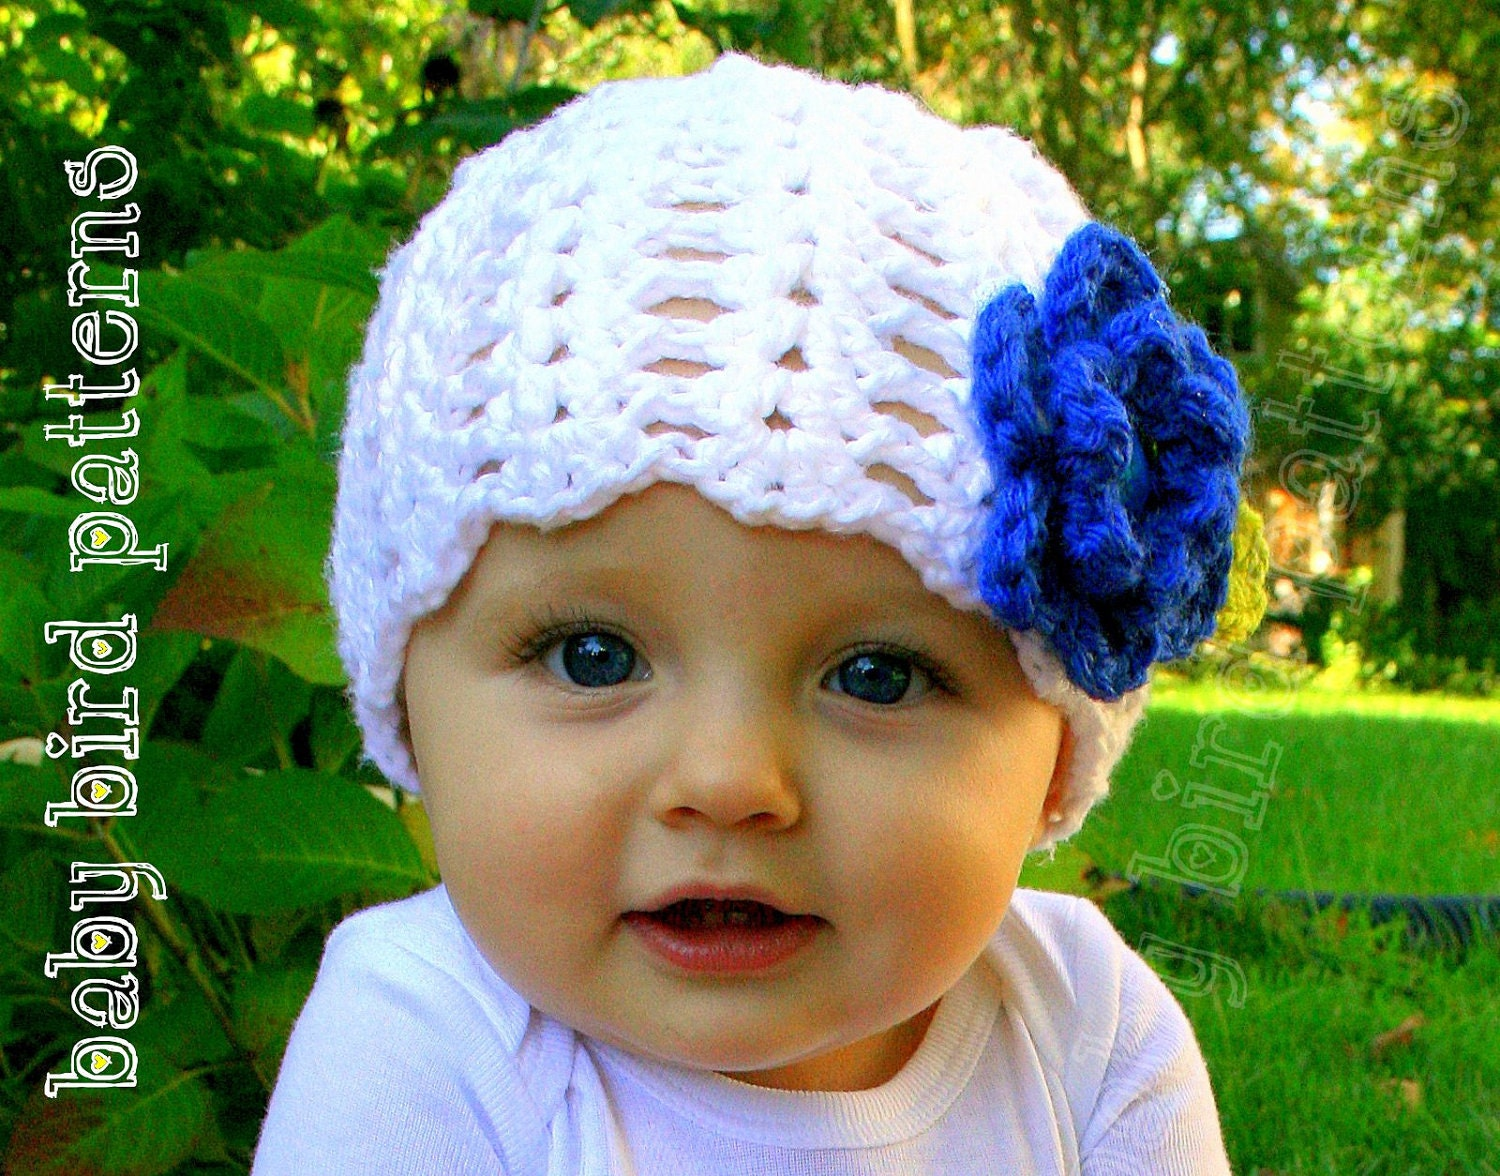 Crochet Patterns Free Childrens Hats : FREE CROCHET PATTERNS FOR KID HATS Crochet Tutorials